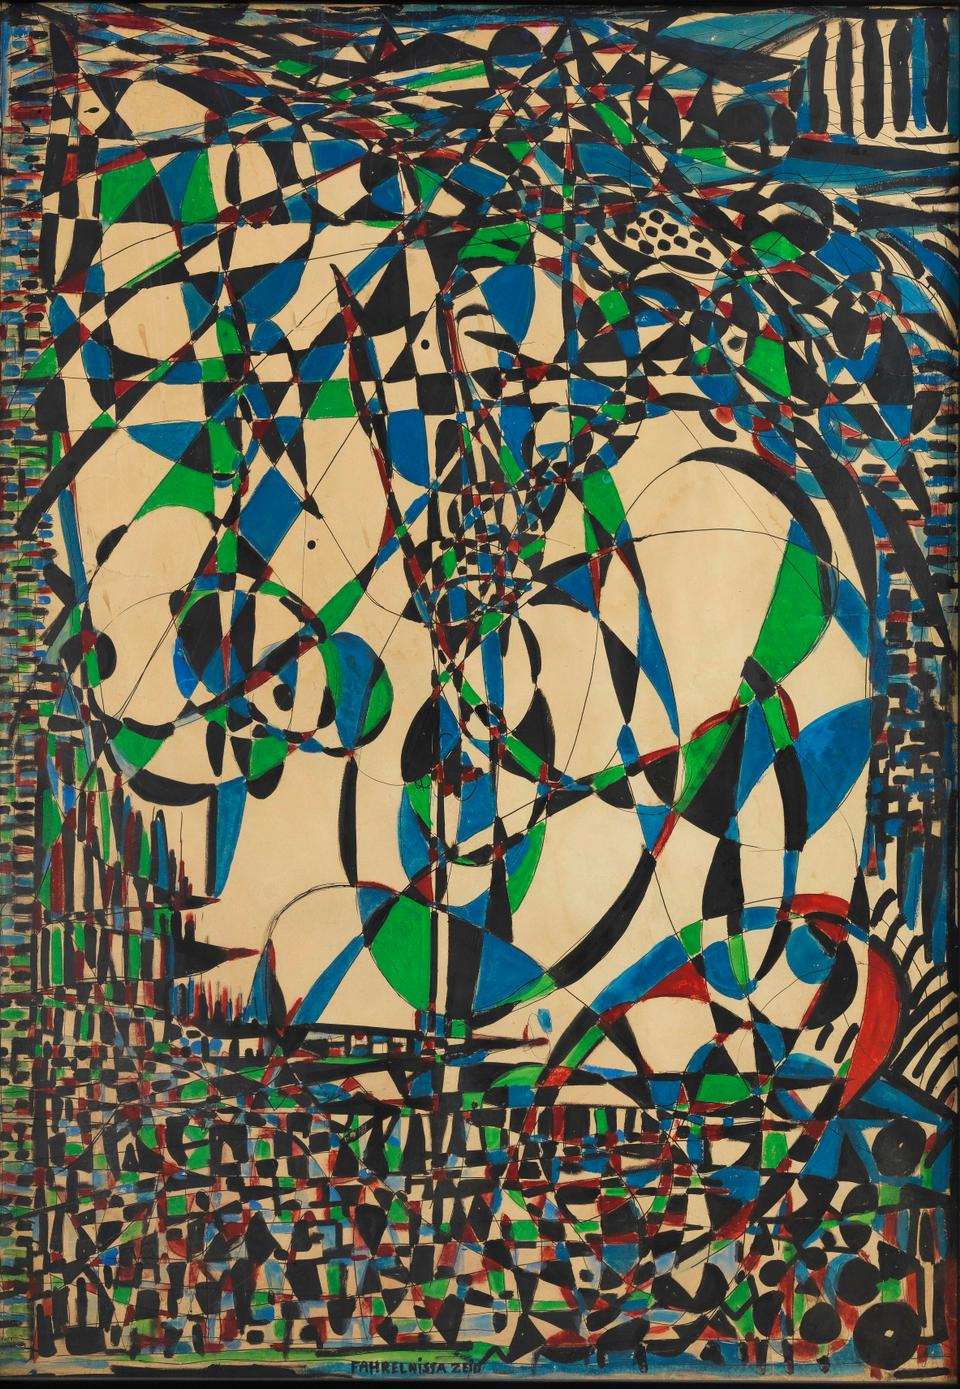 Fahrelnissa Zeid, abstract composition, 1950s, mixed media on paper, 104 x 74 cm